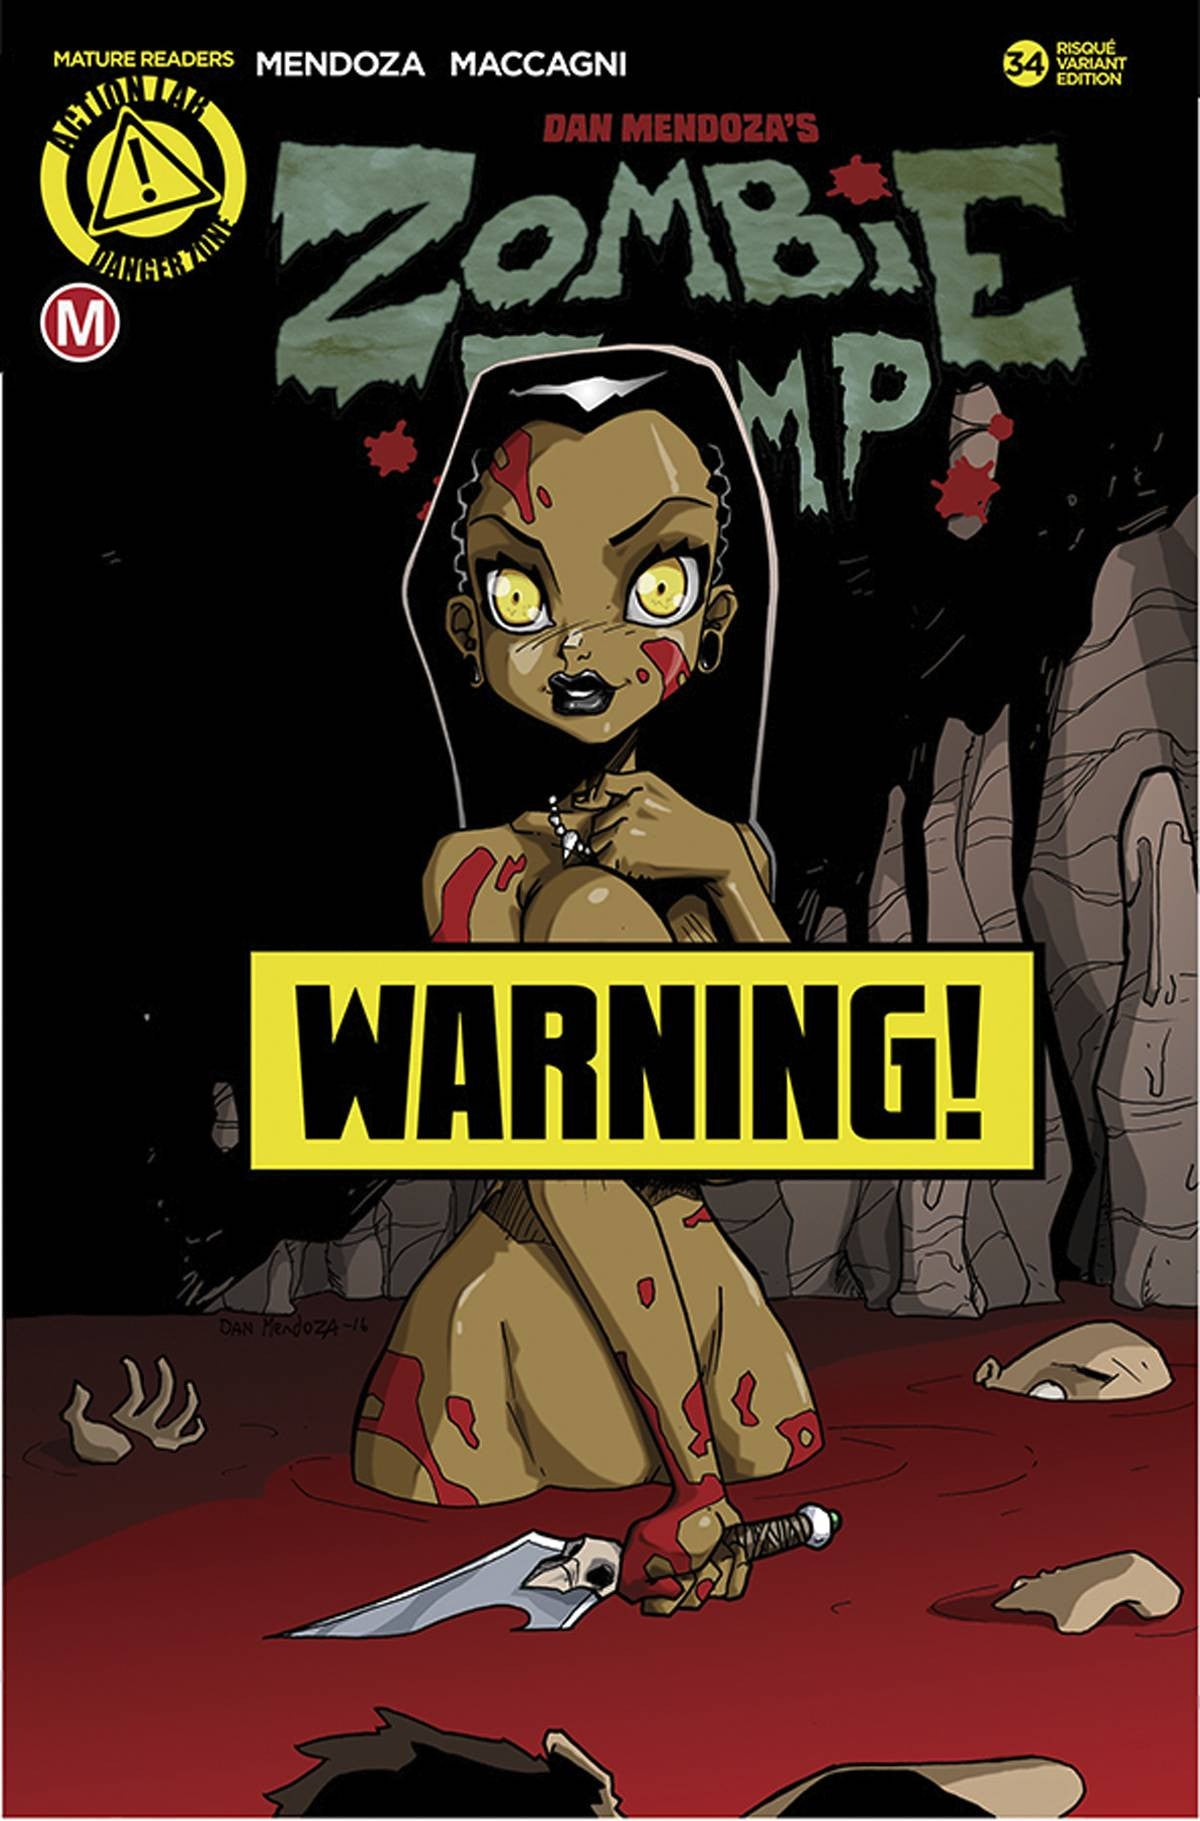 ZOMBIE TRAMP ONGOING #34 CVR B MENDOZA RISQUE